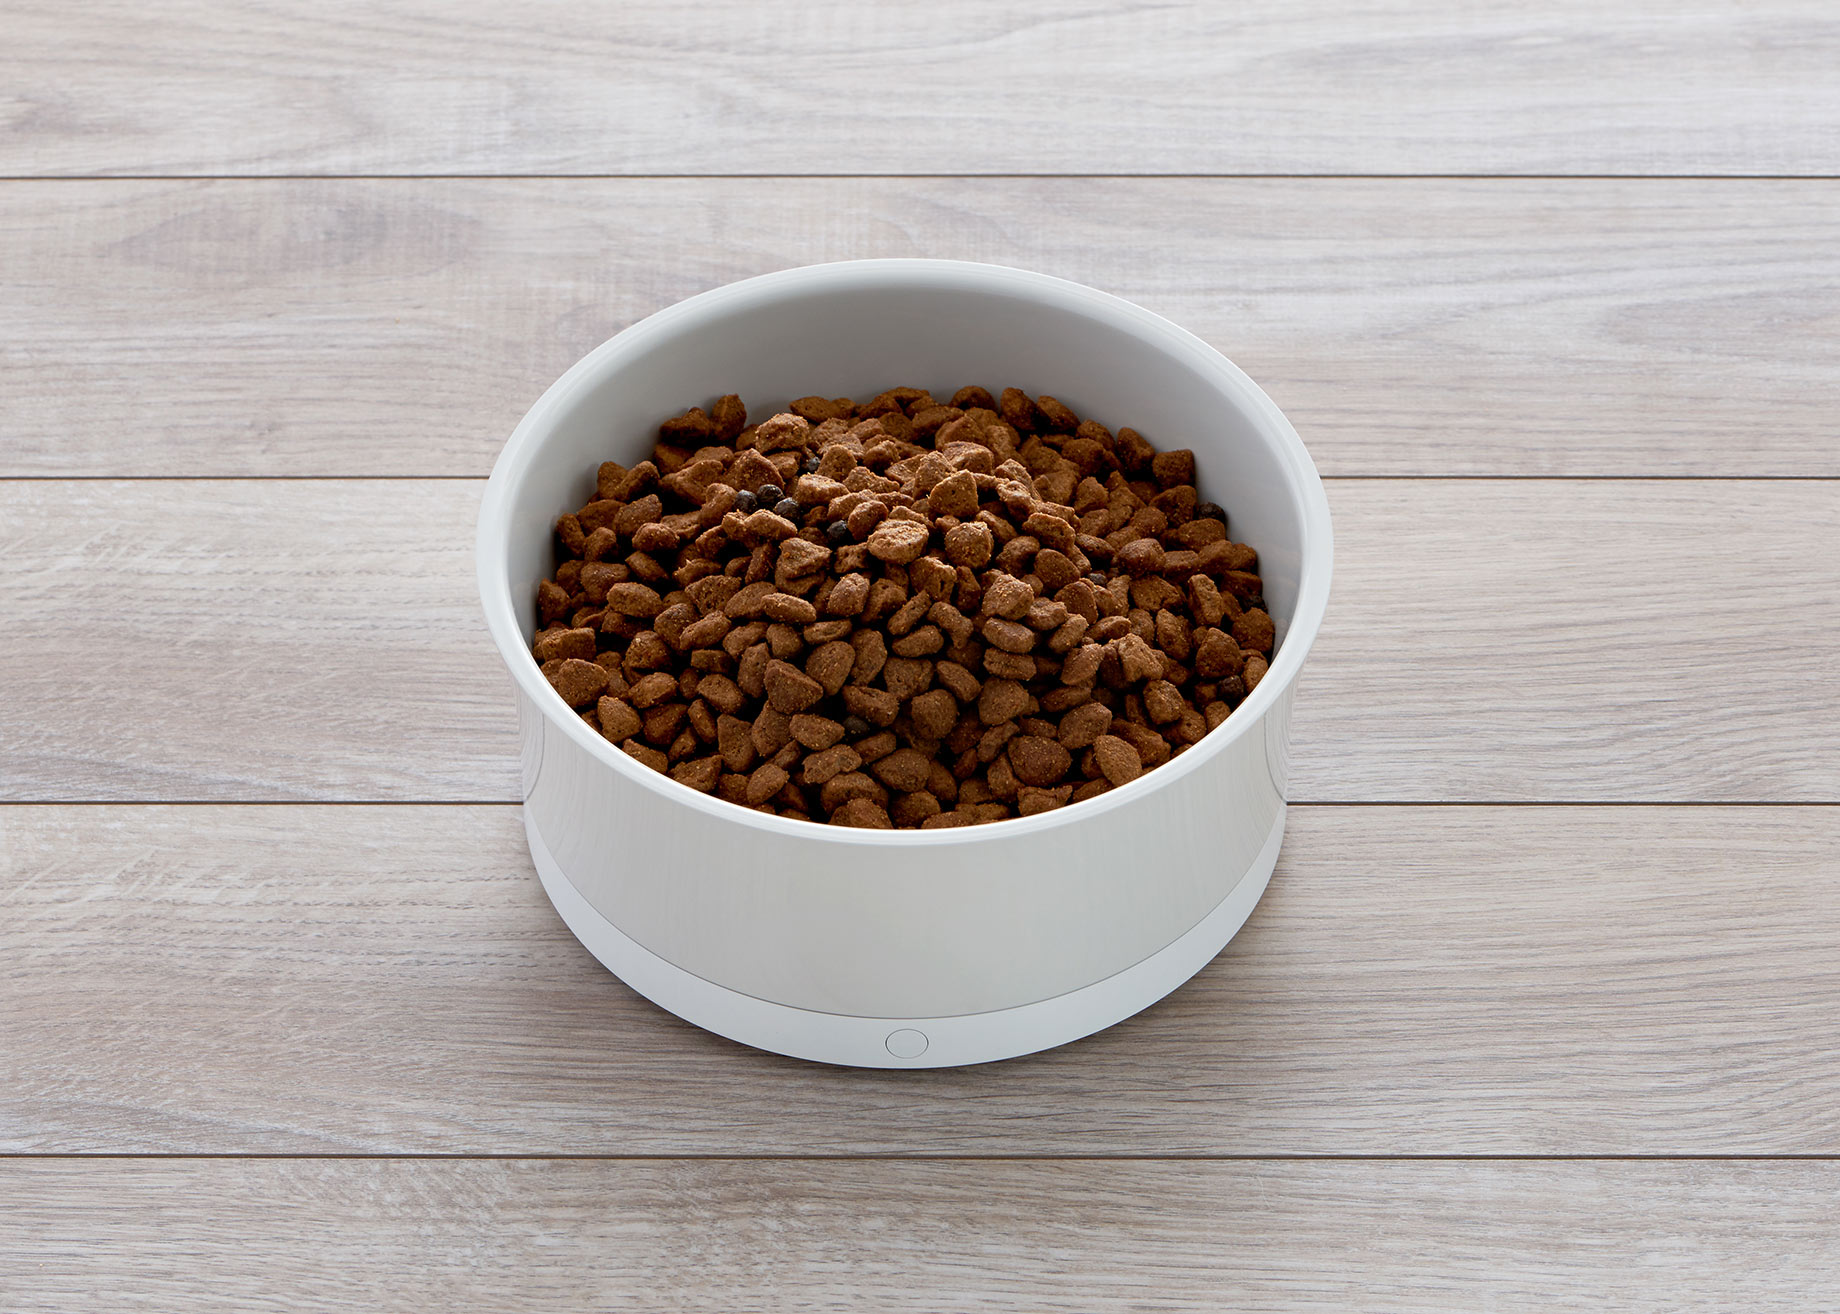 A smart dog food bowl by ObeDog photographed by Commercial Photographer, Peter Samuels.